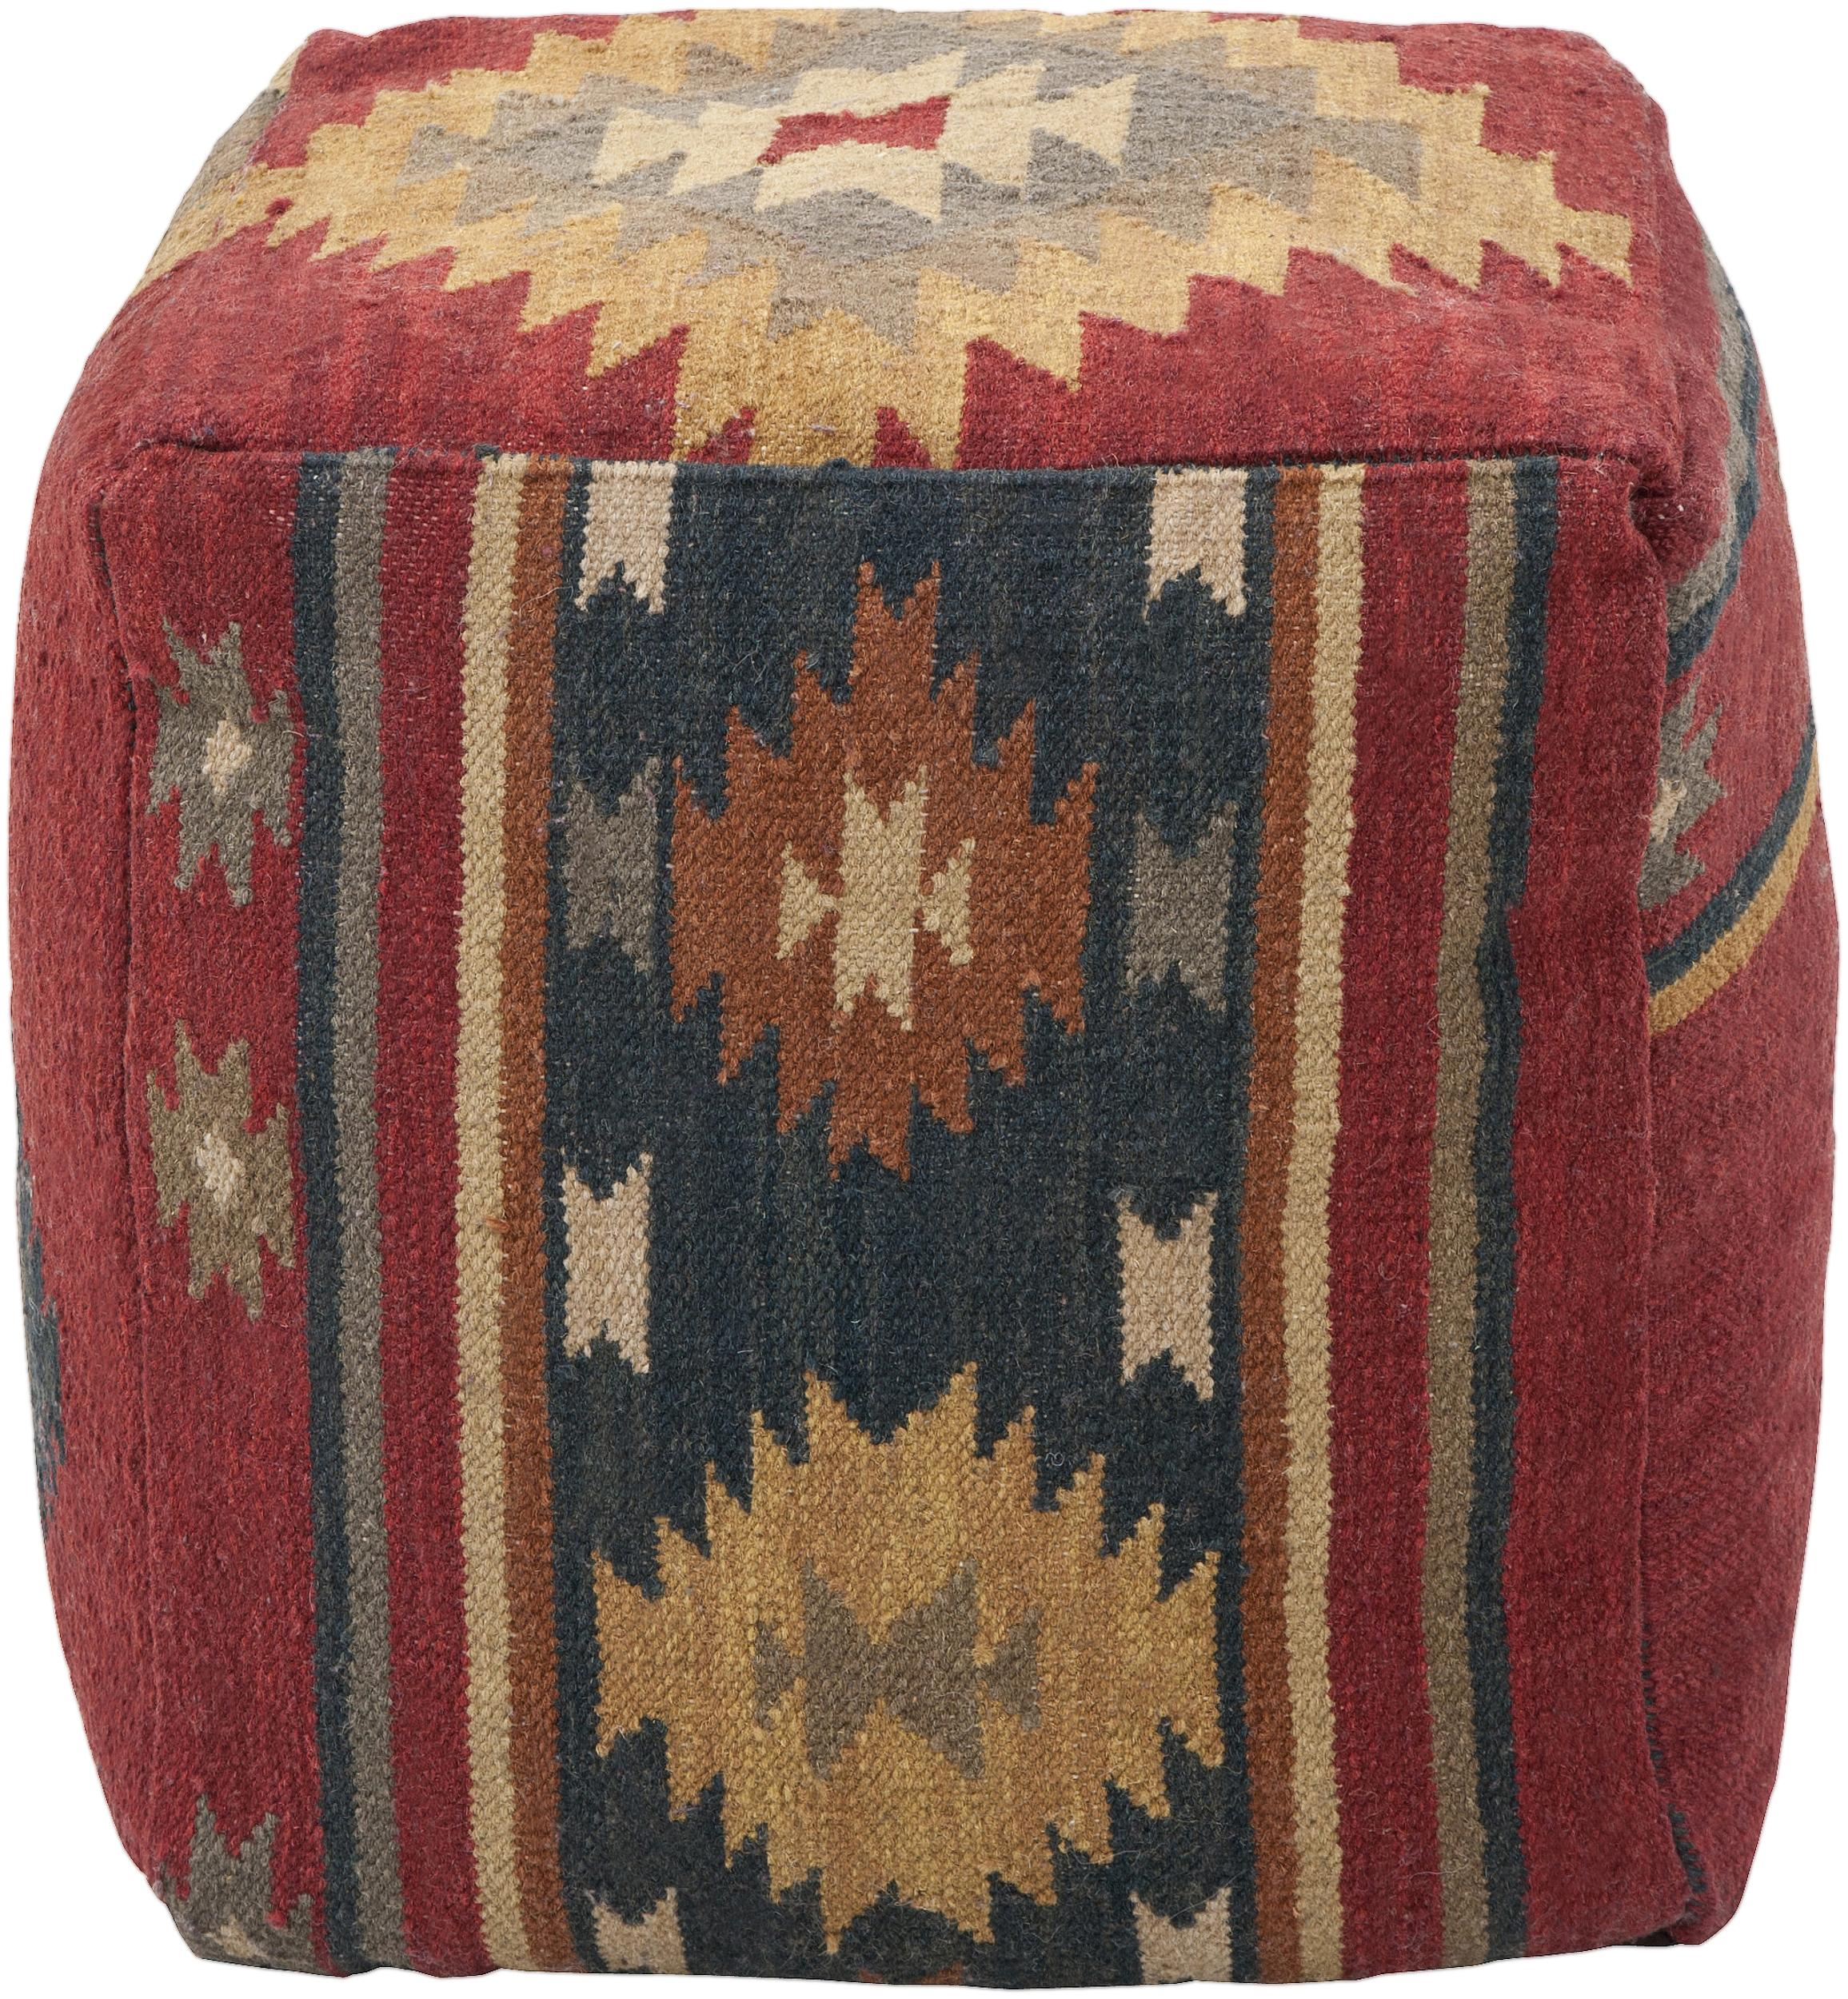 "Poufs 18""x18""x18"" Pouf by Surya at Rooms for Less"